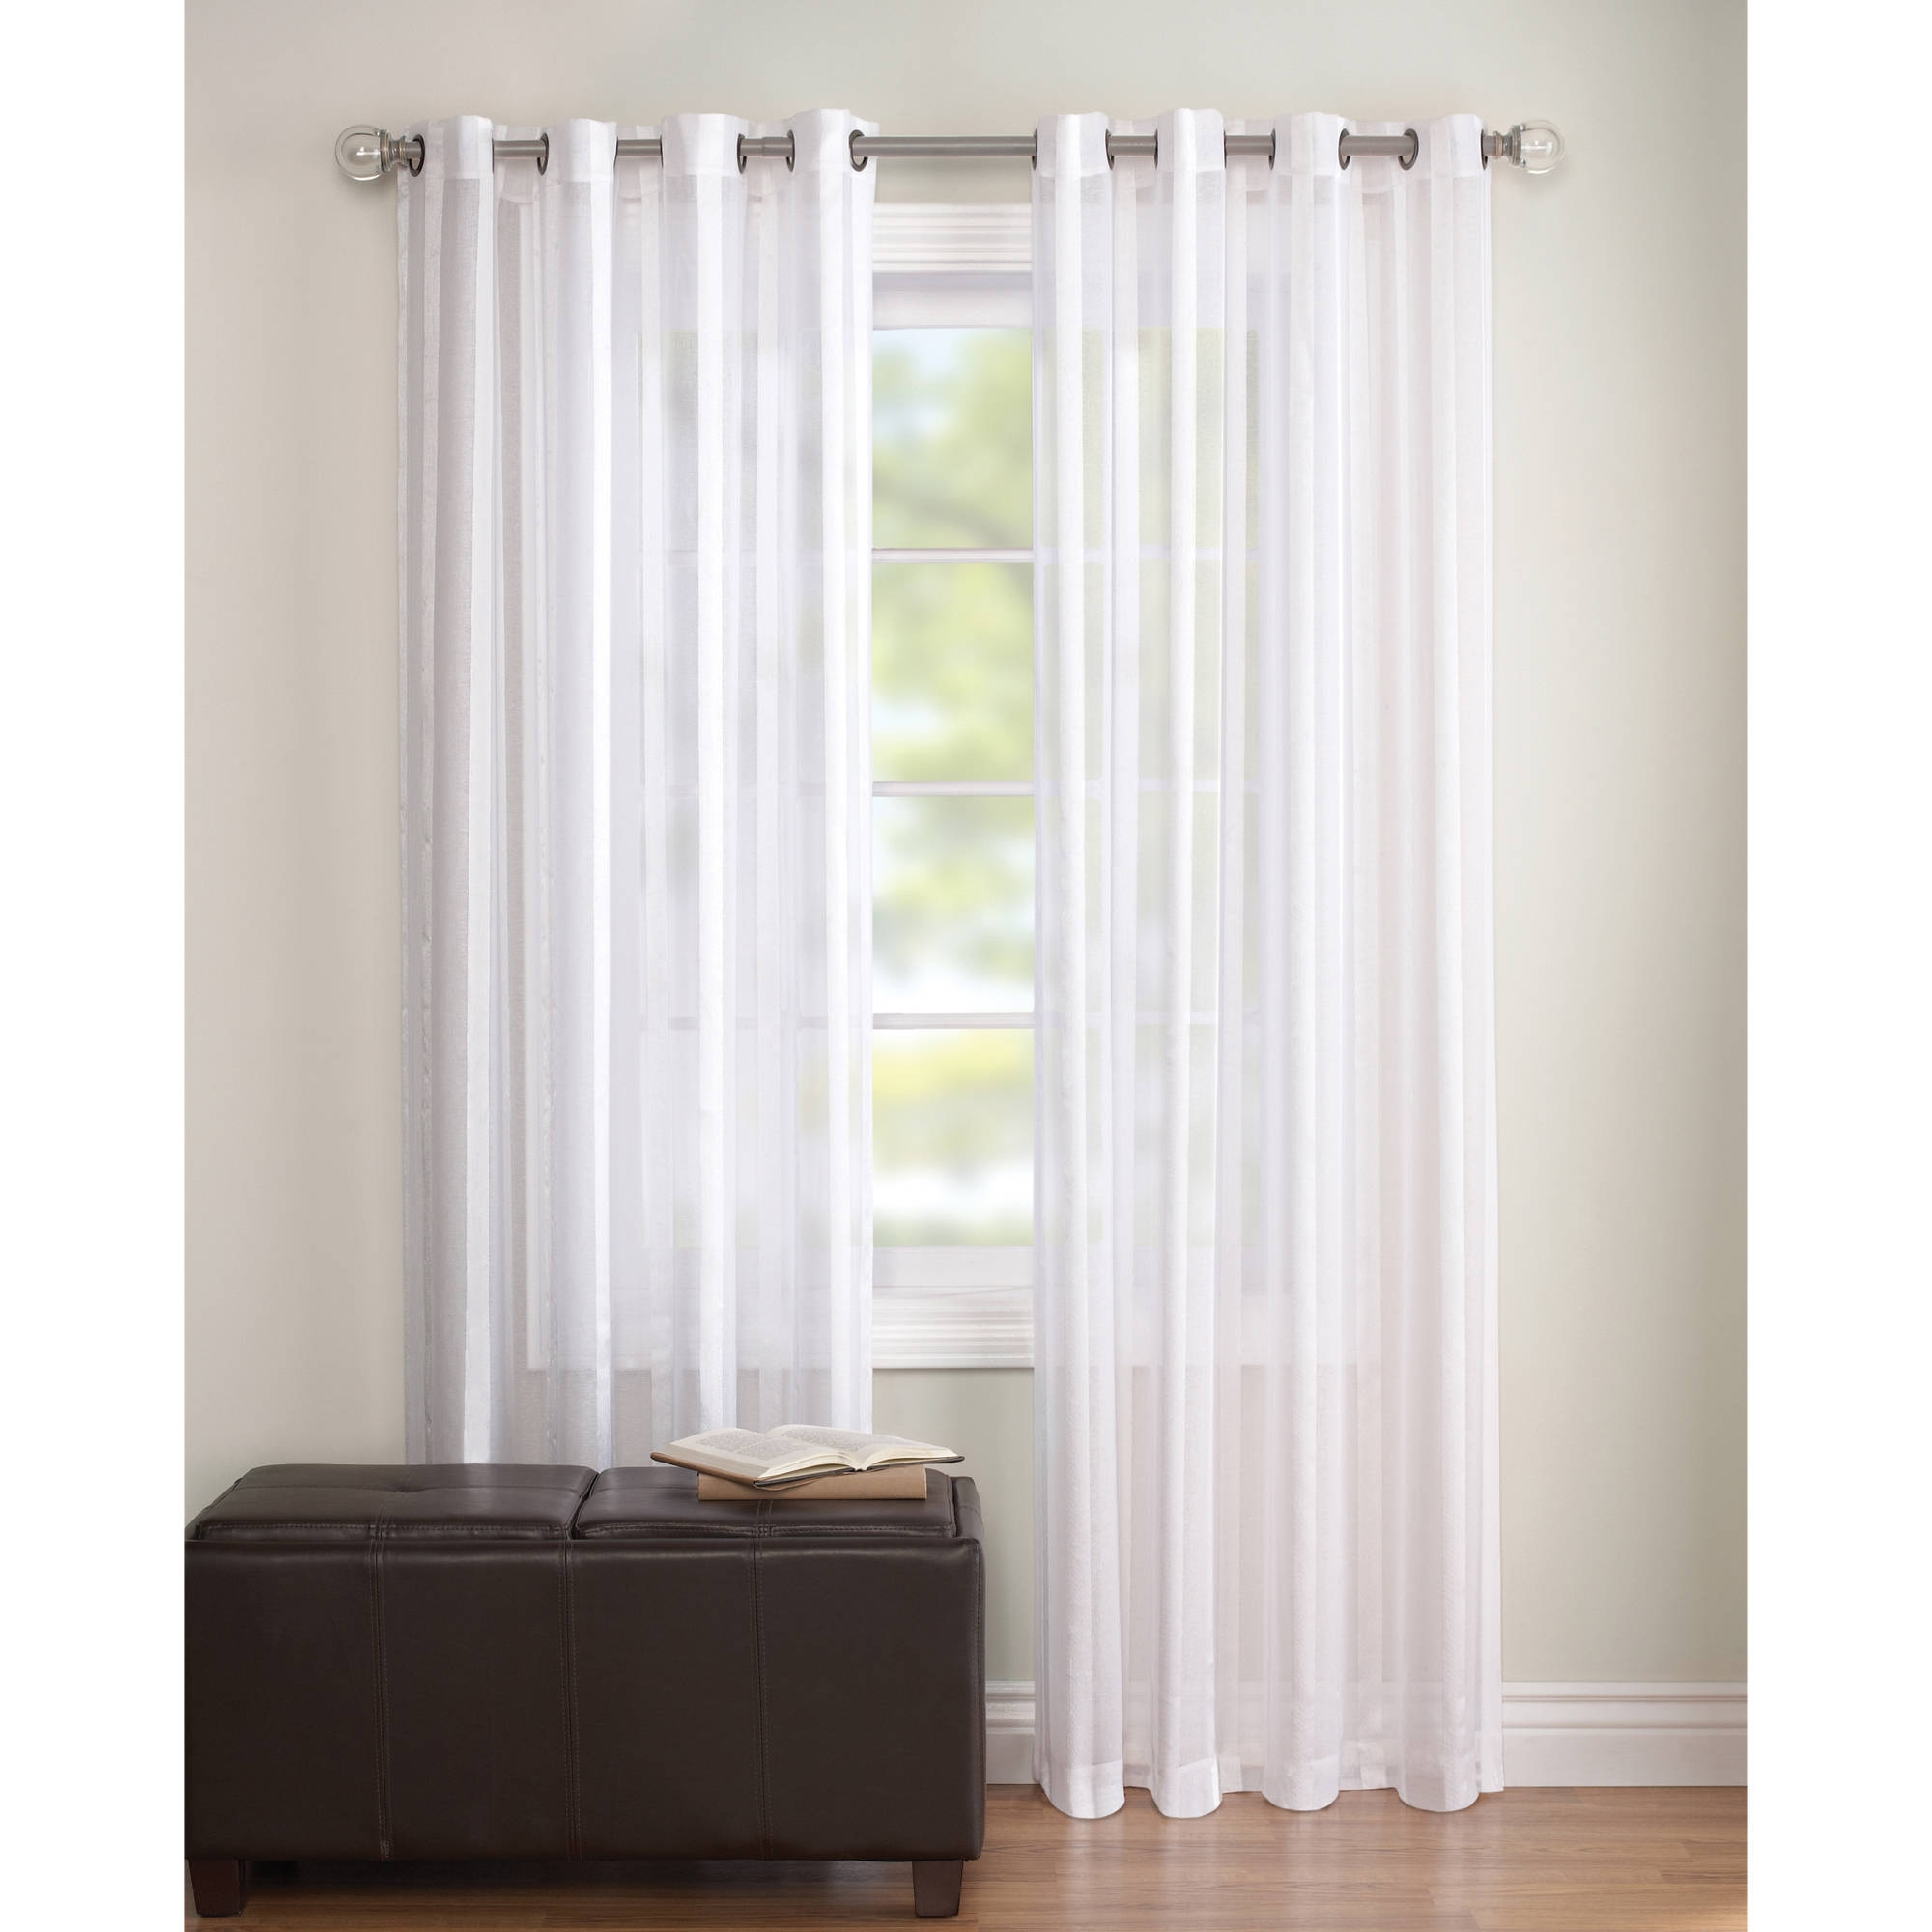 Better Homes And Gardens Embroidered Sheer Curtain Panel Walmart Inside White Sheer Cotton Curtains (Image 3 of 15)